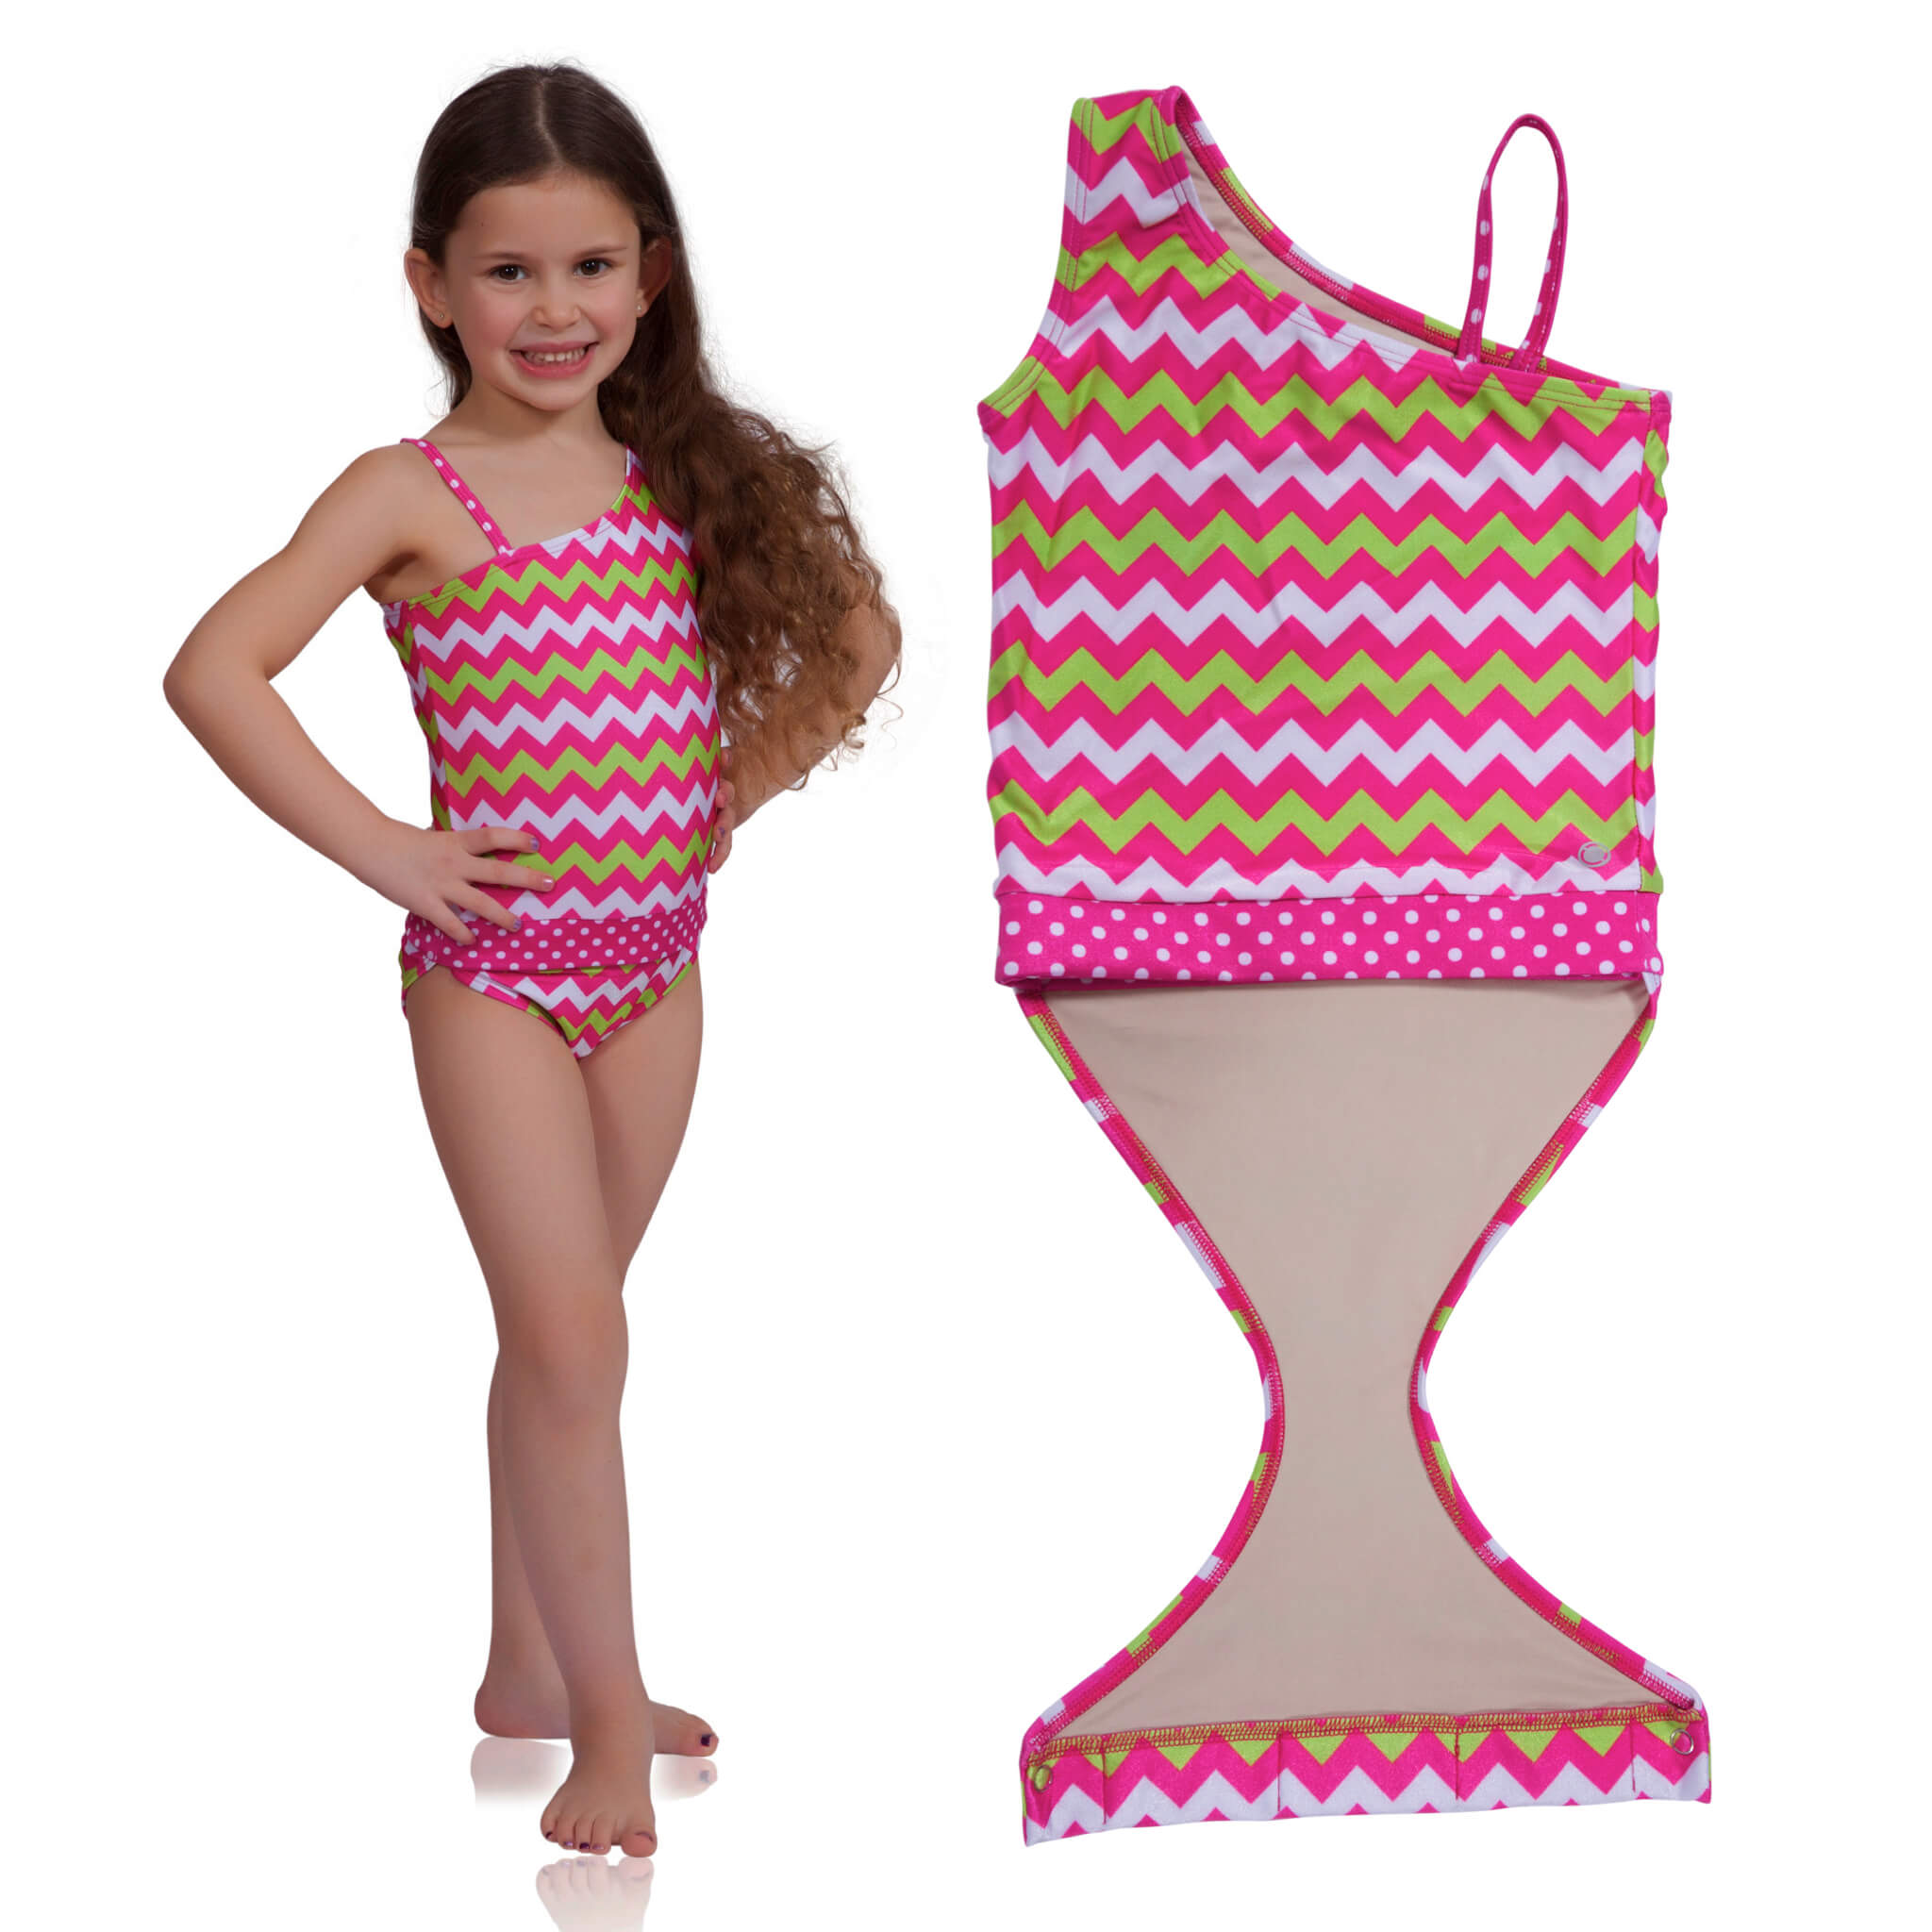 Watermelon Chevron one-shoulder swimsuit for girls by FASTEN. Features patented design that opens at the waist, making diaper changes and bathroom breaks faster and easier. Sizes 2T-10. UPF 50+ sun protection built right in! One-shoulder design.